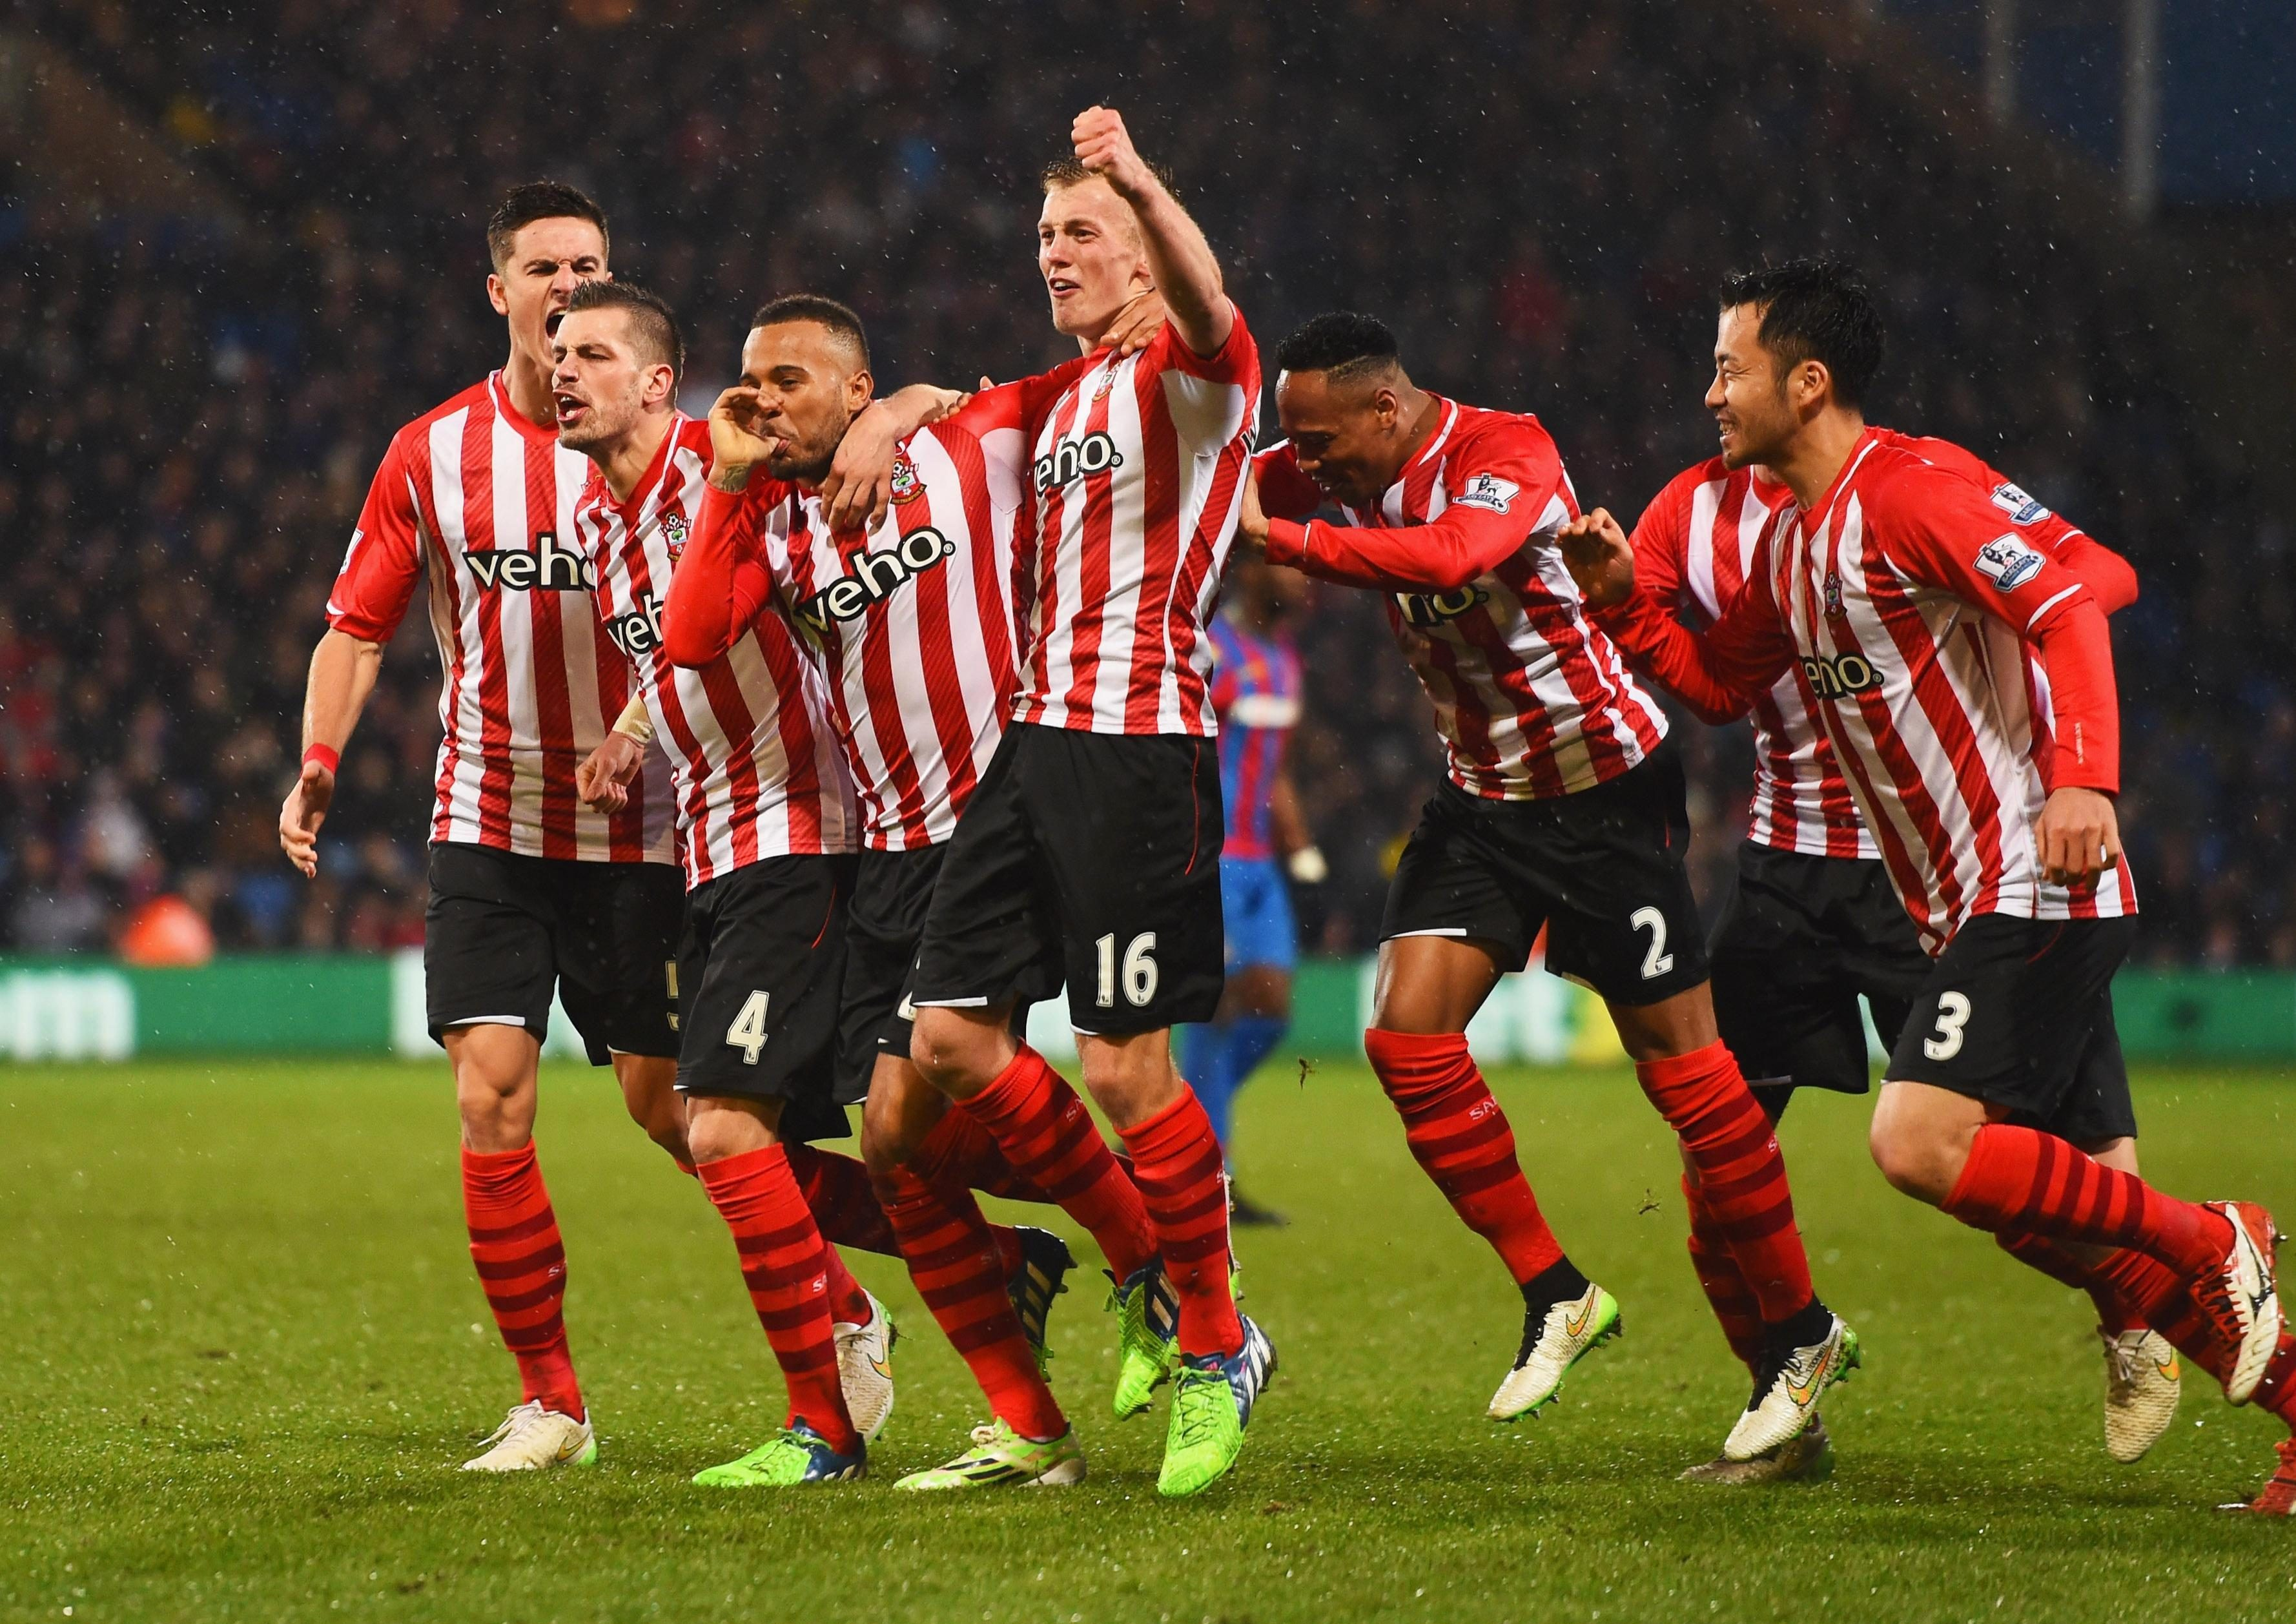 Feel like pure sh*t, just want the old Southampton back